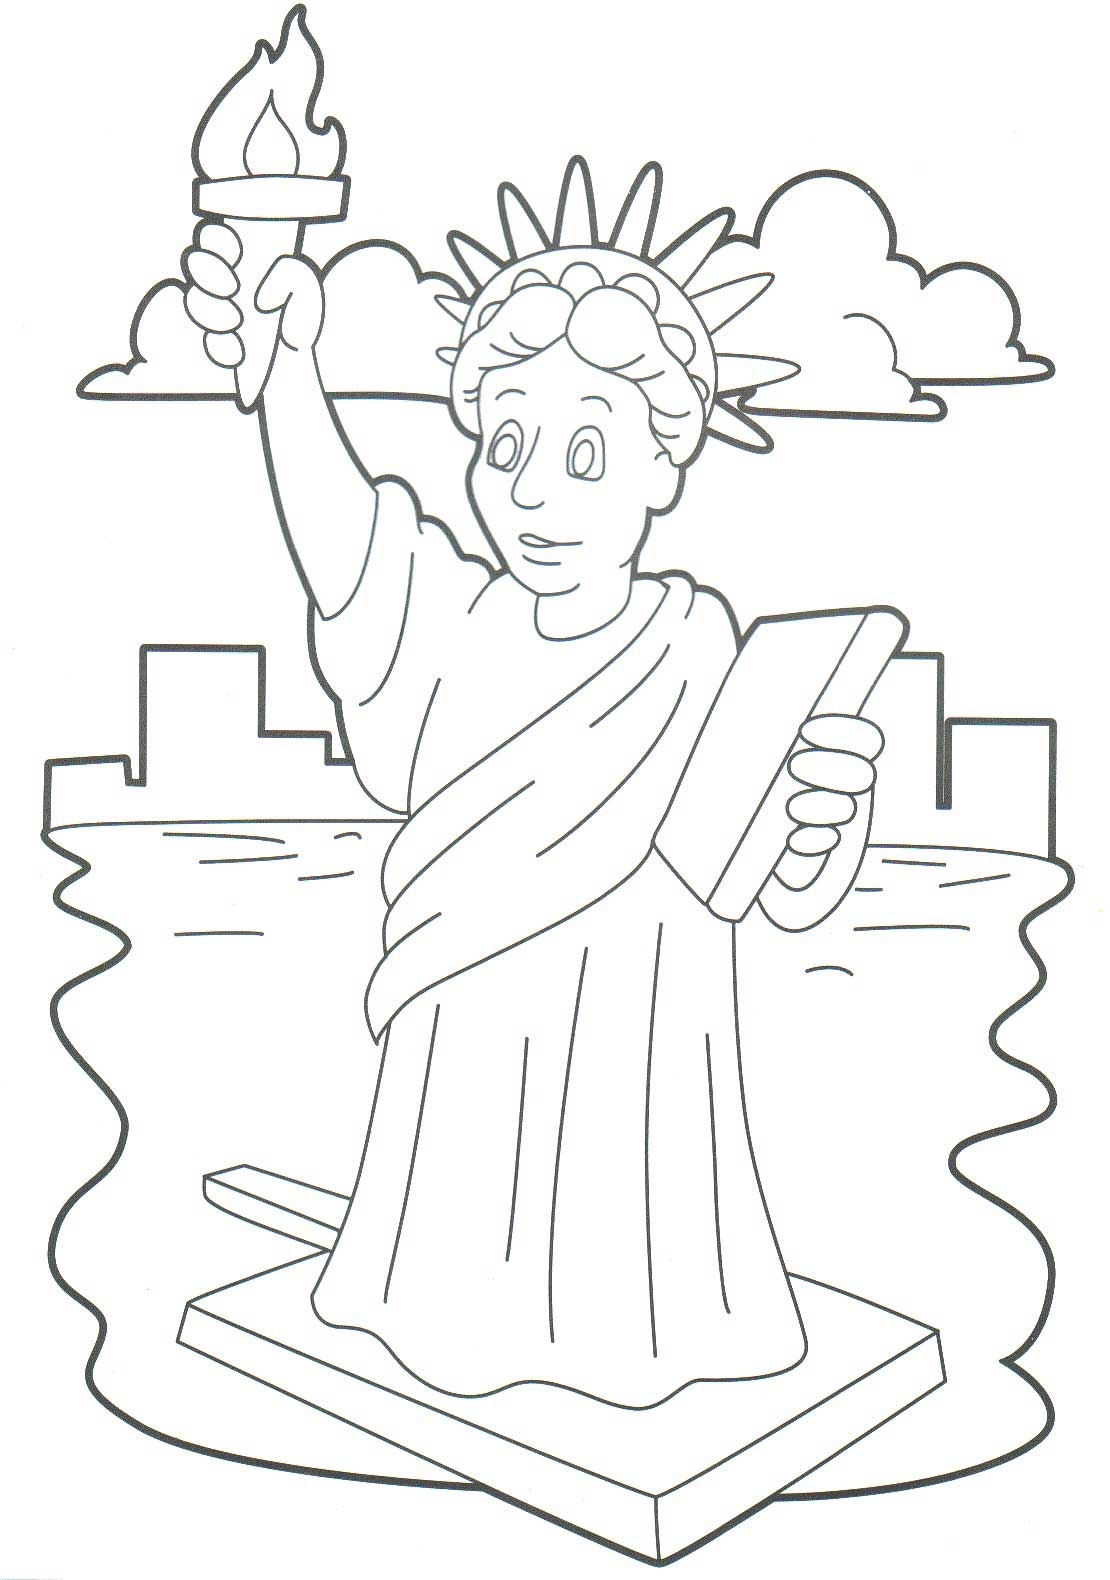 Statue Of Liberty Coloring Page At Getcolorings